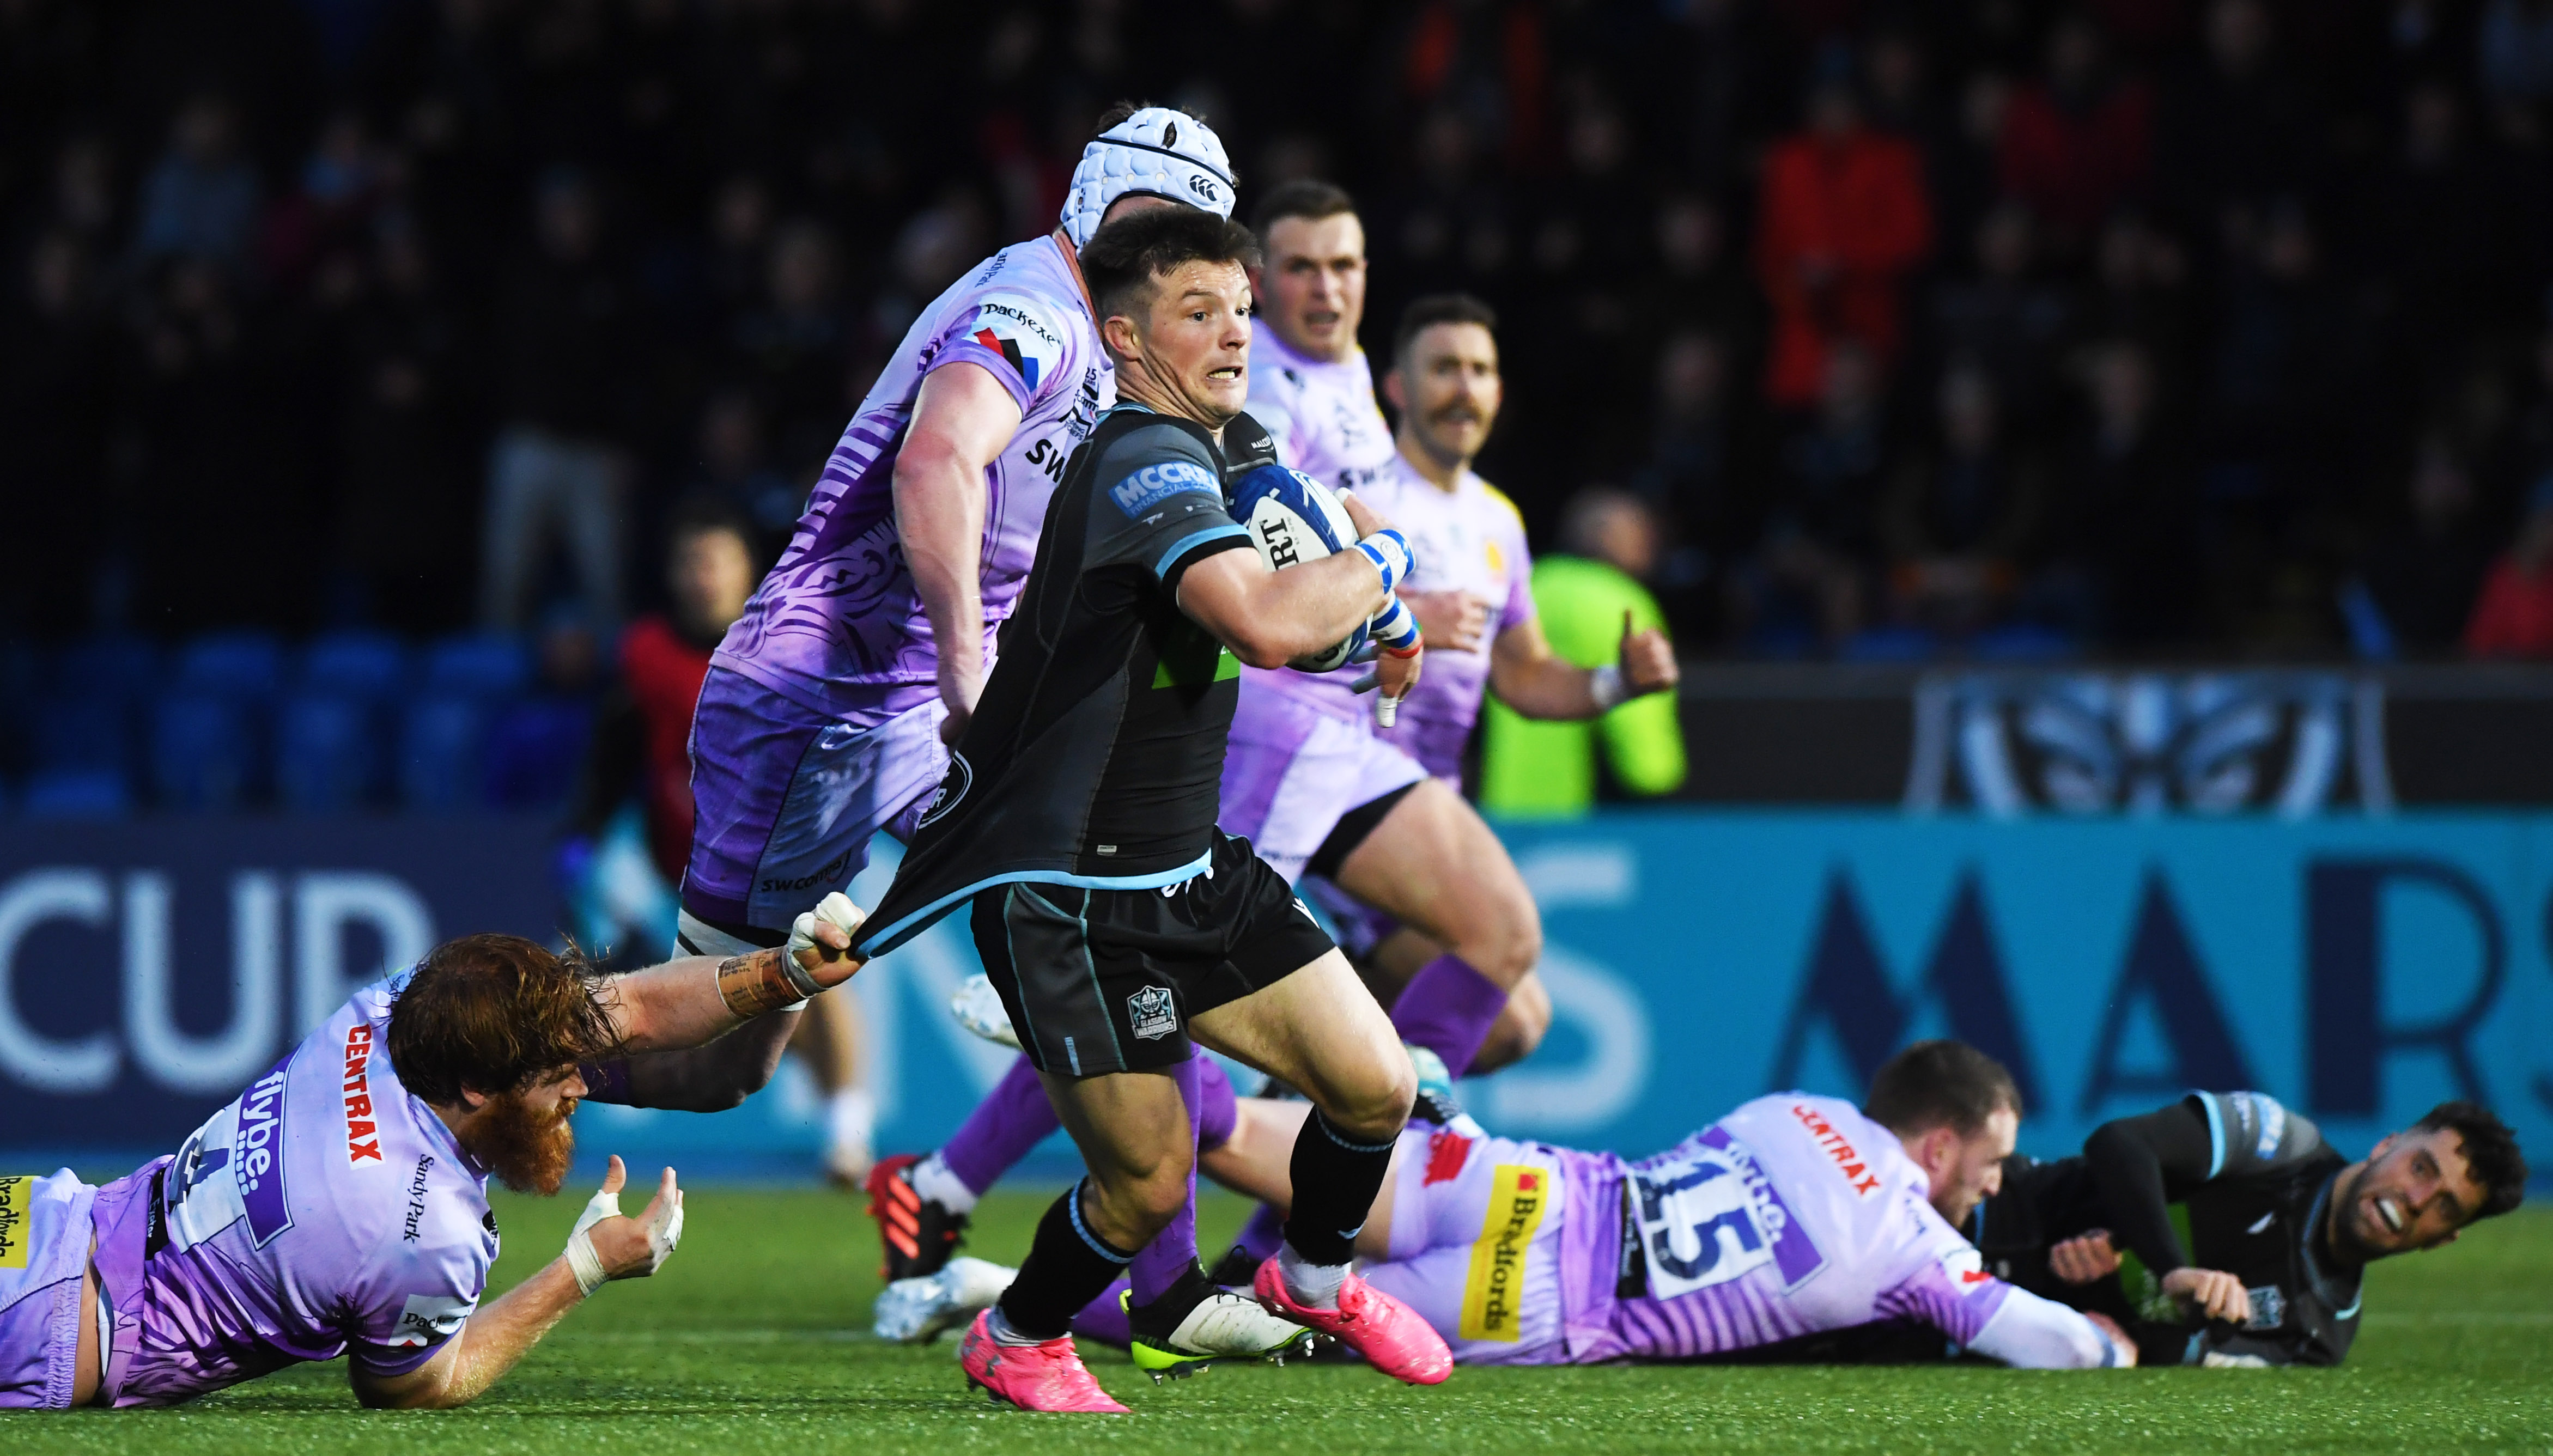 George Horne drives through for Glasgow's third try against Exeter at Scotstoun.